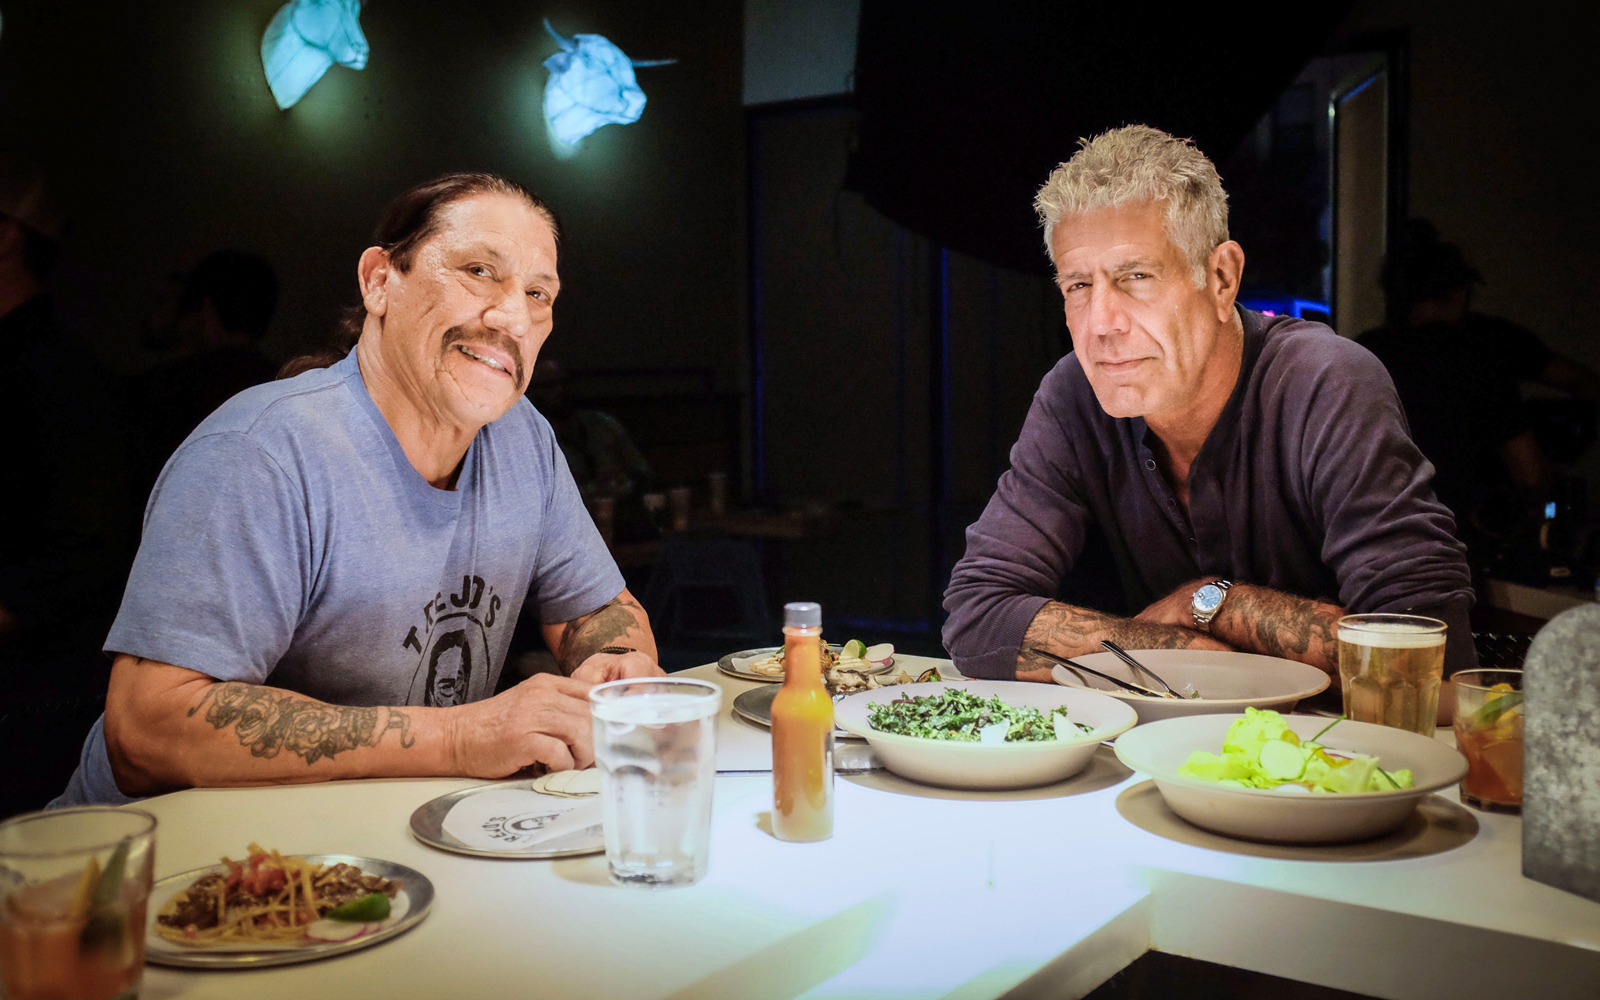 Anthony Bourdain is back with 'Parts Unknown' to show another side of L.A.